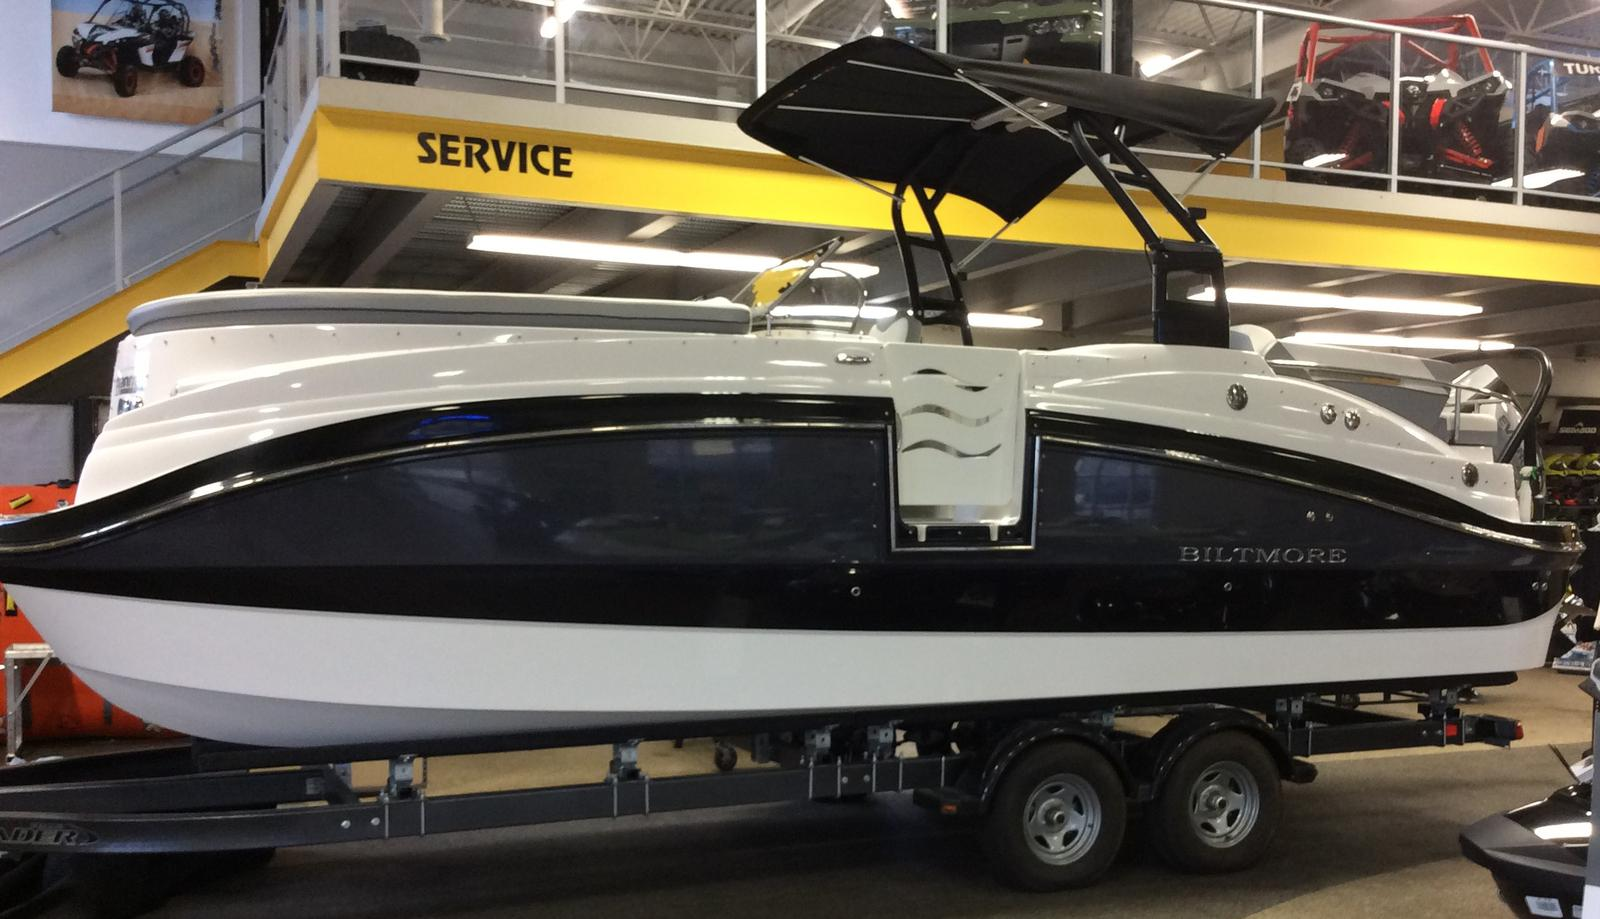 For Sale: 2016 Biltmore 5 Series - Demo ft<br/>Banner Recreational Products